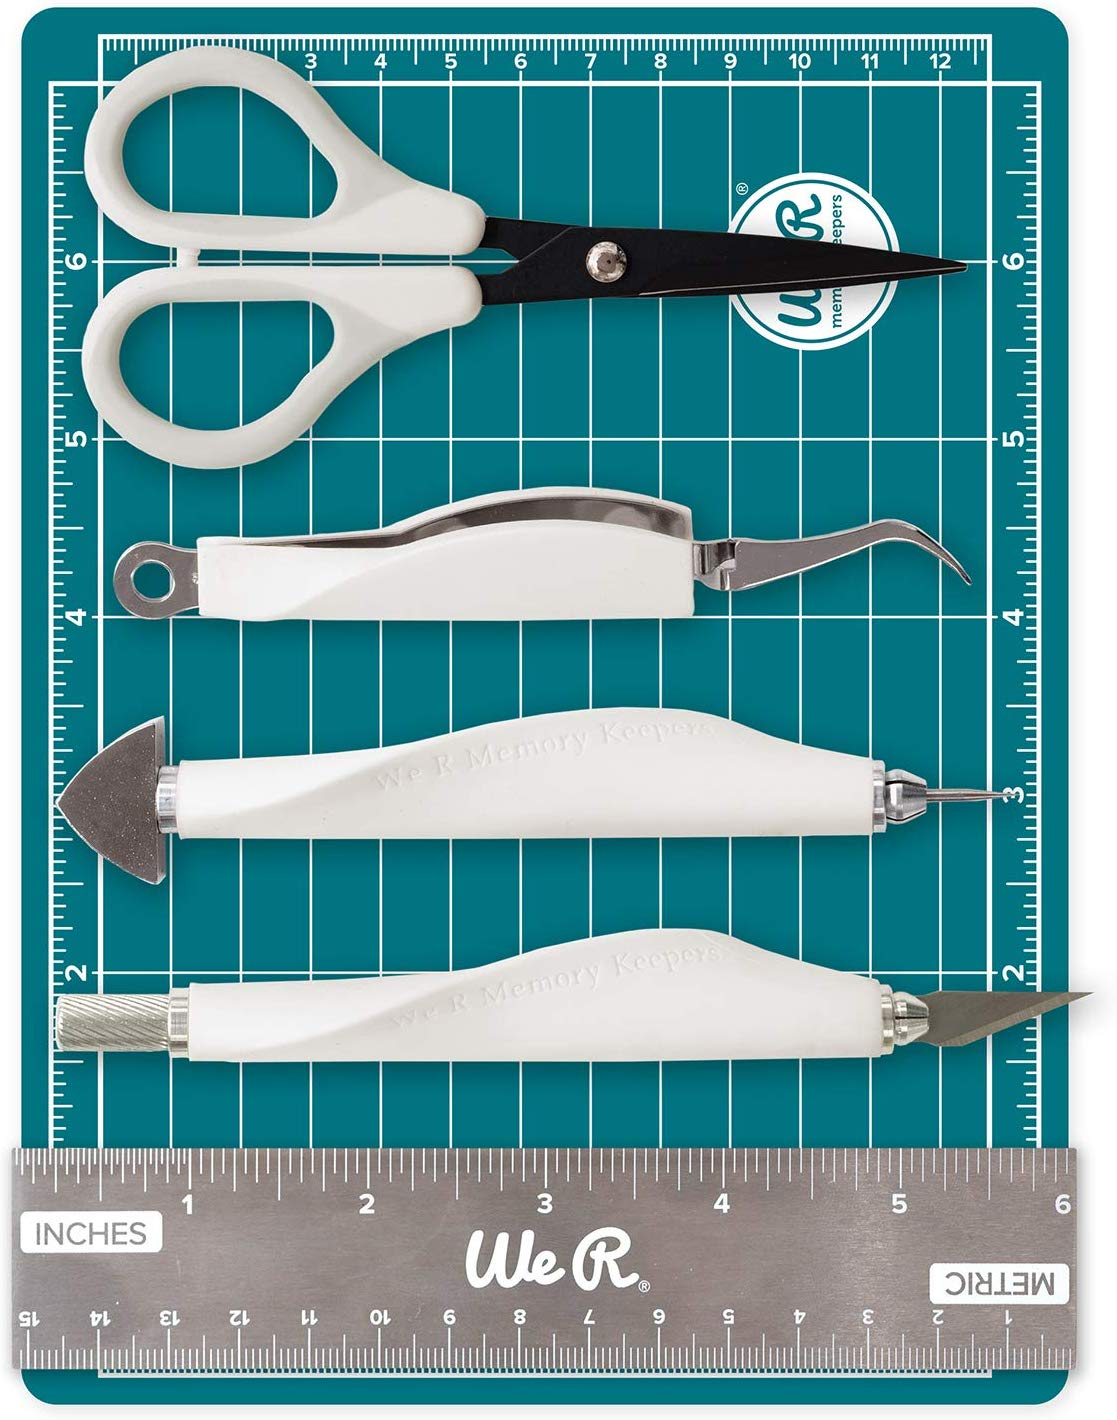 All in on toolkit - Easily handle any crafting or art project with this all-inclusive mini tool kit. Includes 6 x 8-inch magnetic mat, 6-inch ruler, precision tweezers, brad setter, art knife and 5-inch precision scissors.